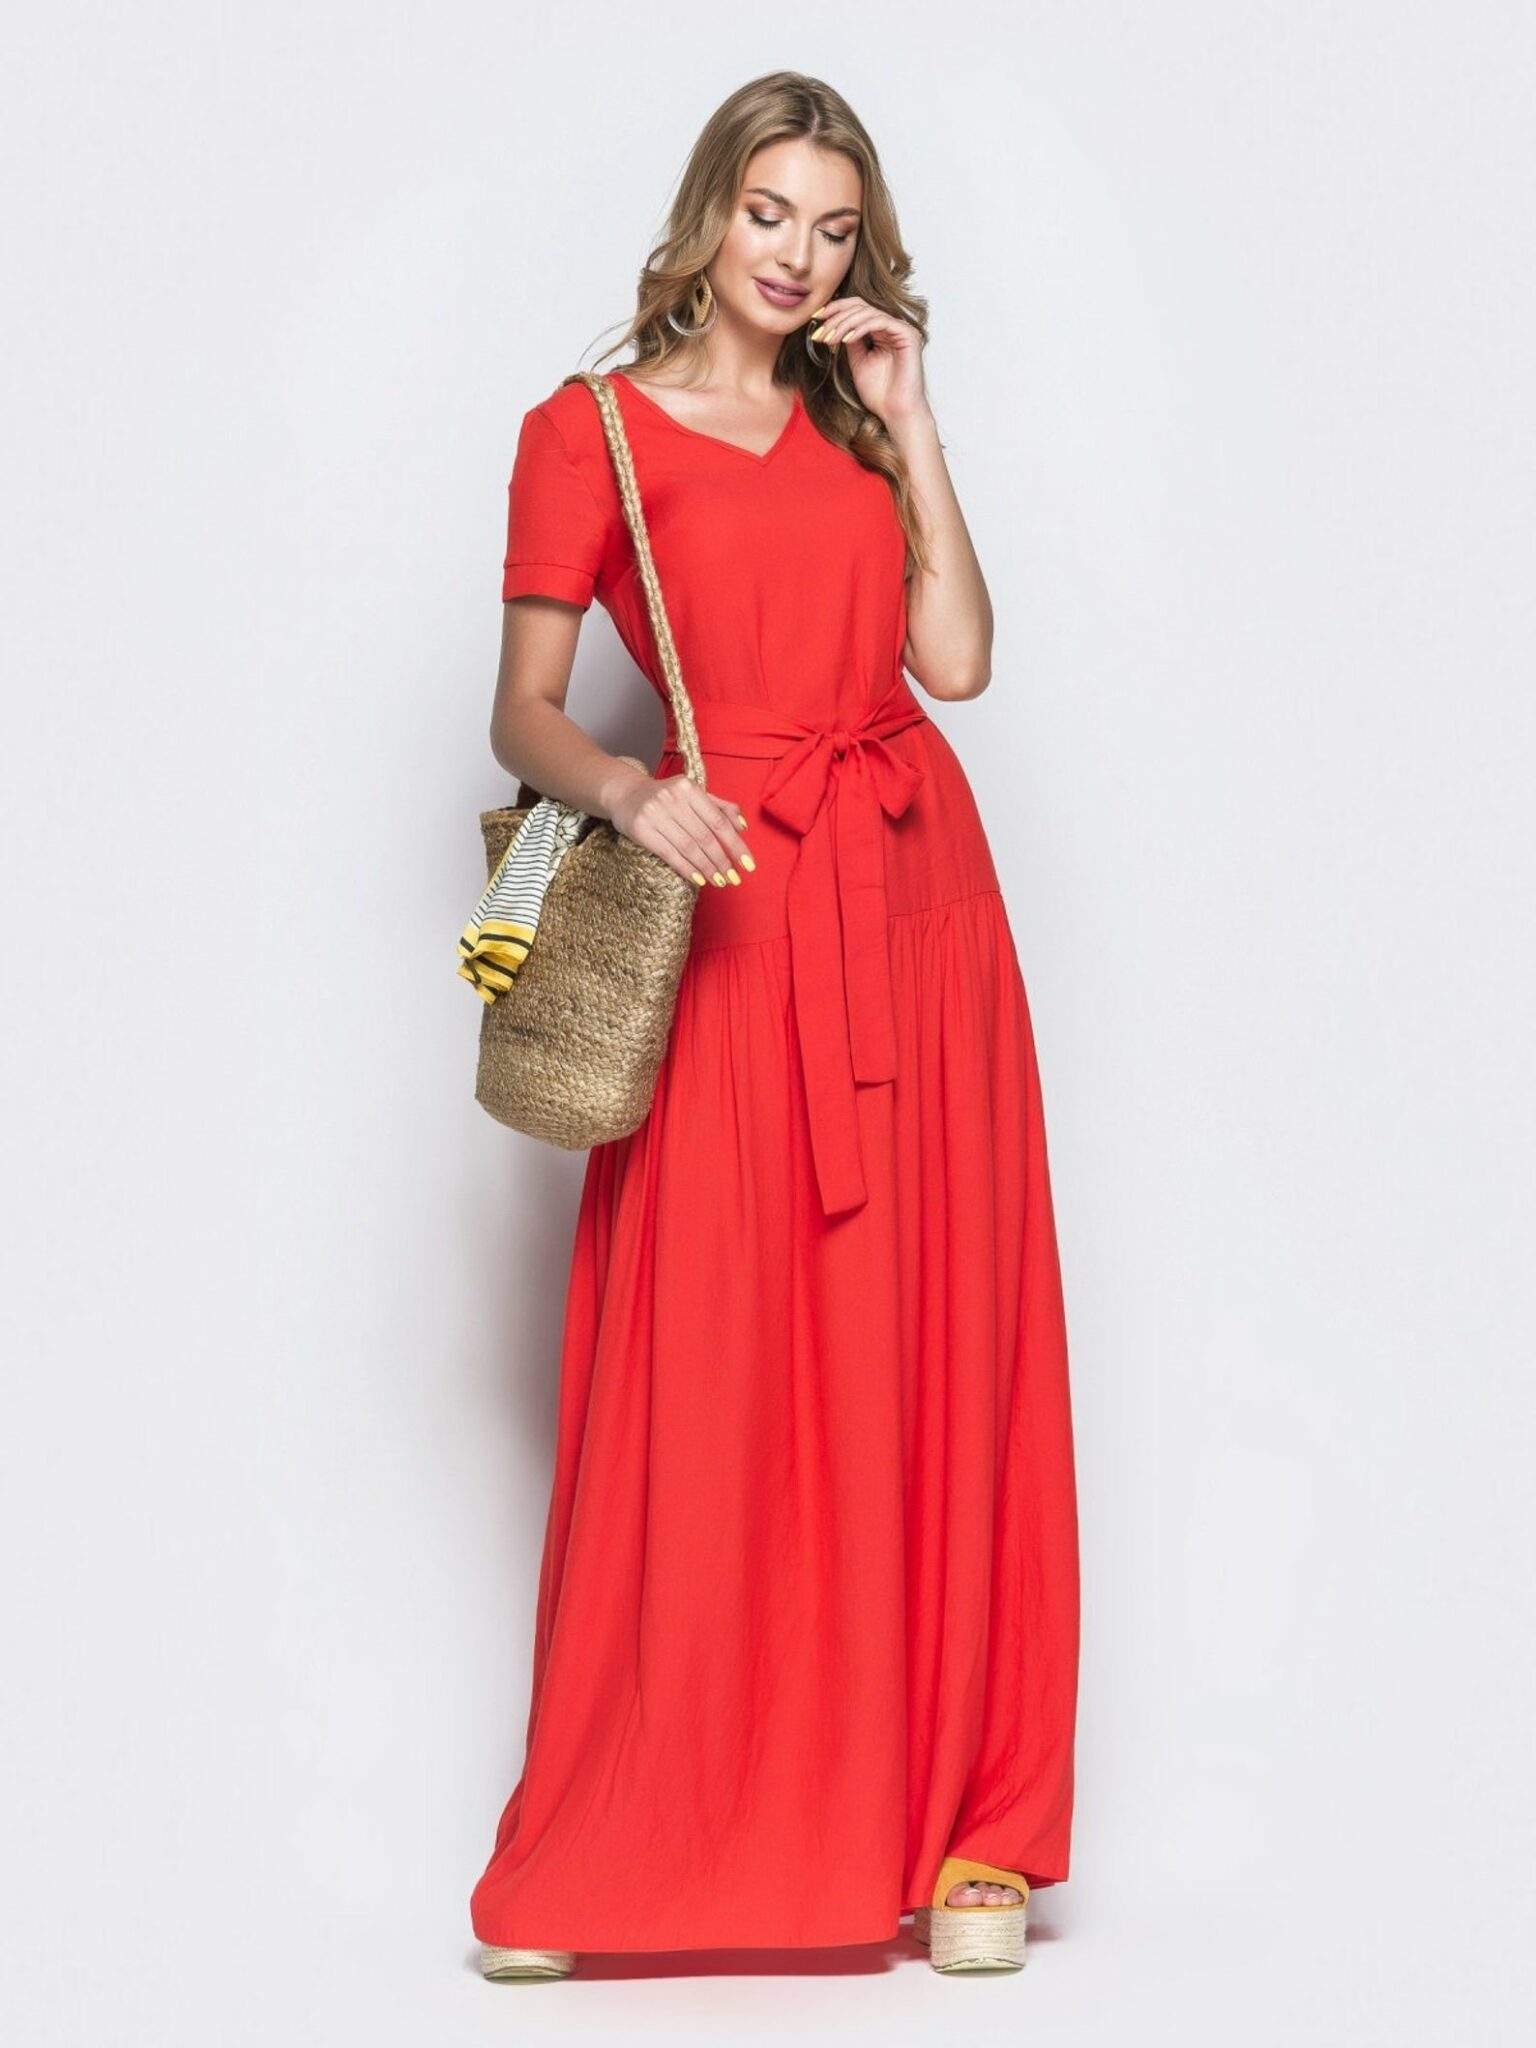 LOVE this red dress! Beautiful color and so flattering! Perfect for beach and summer.